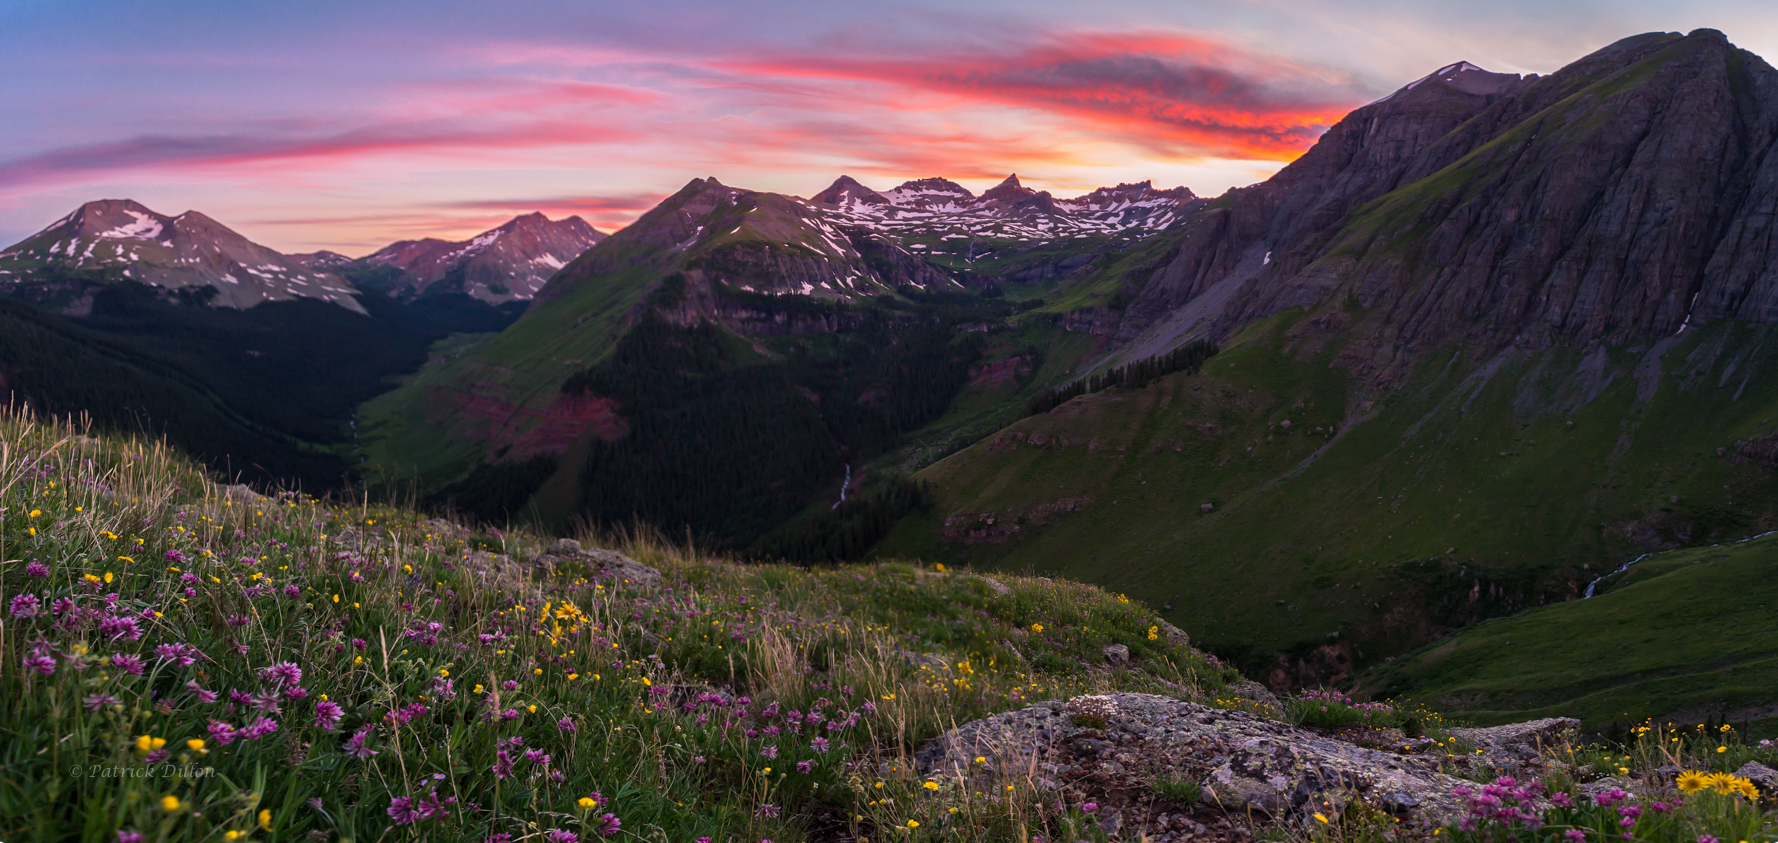 Distant Ice Lake Basin Sunset Pano